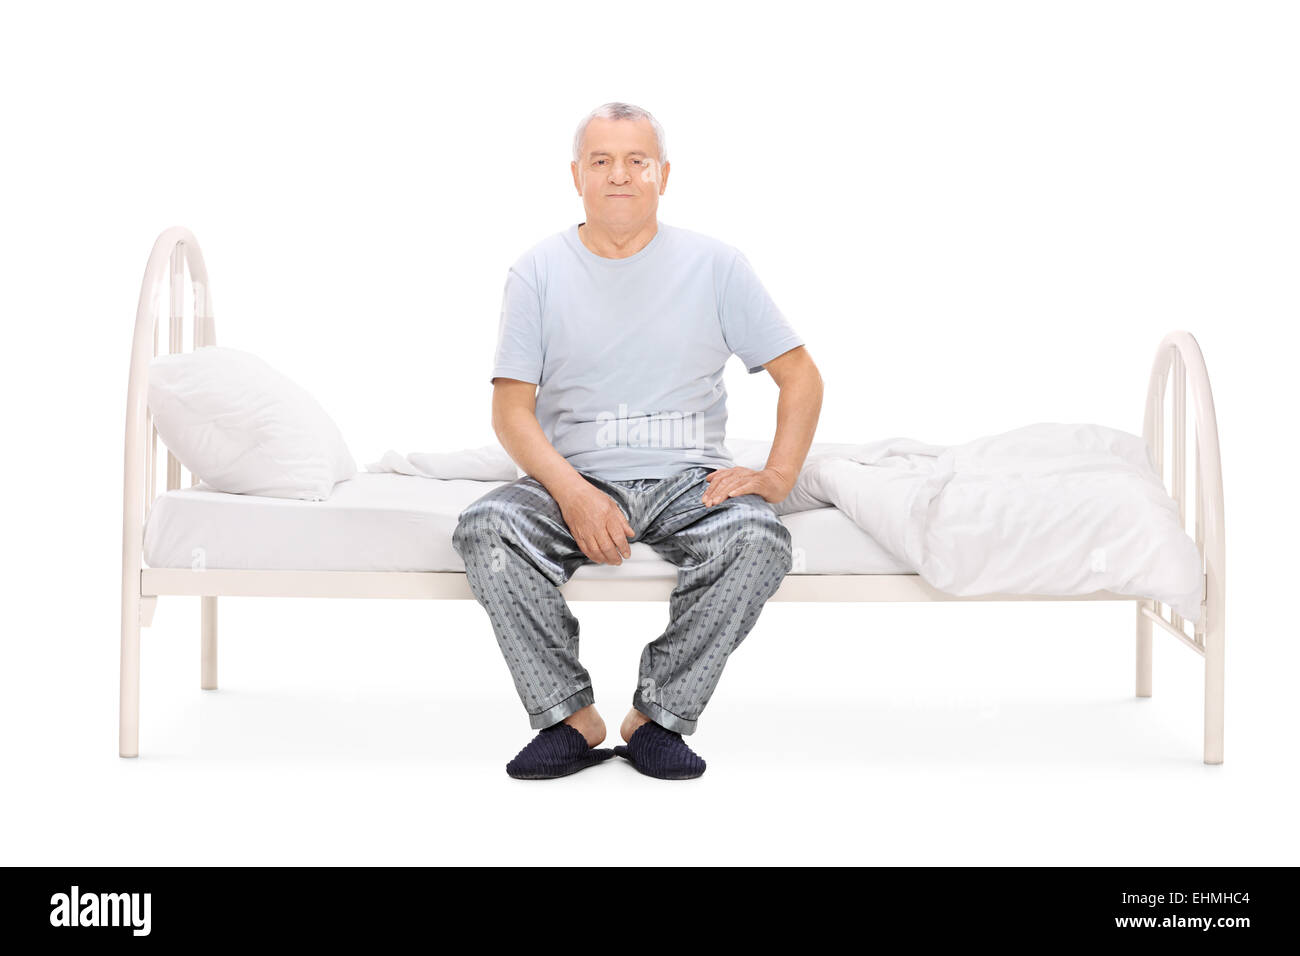 4d35be84f6 Senior man in pajamas sitting on a bed isolated on white background ...